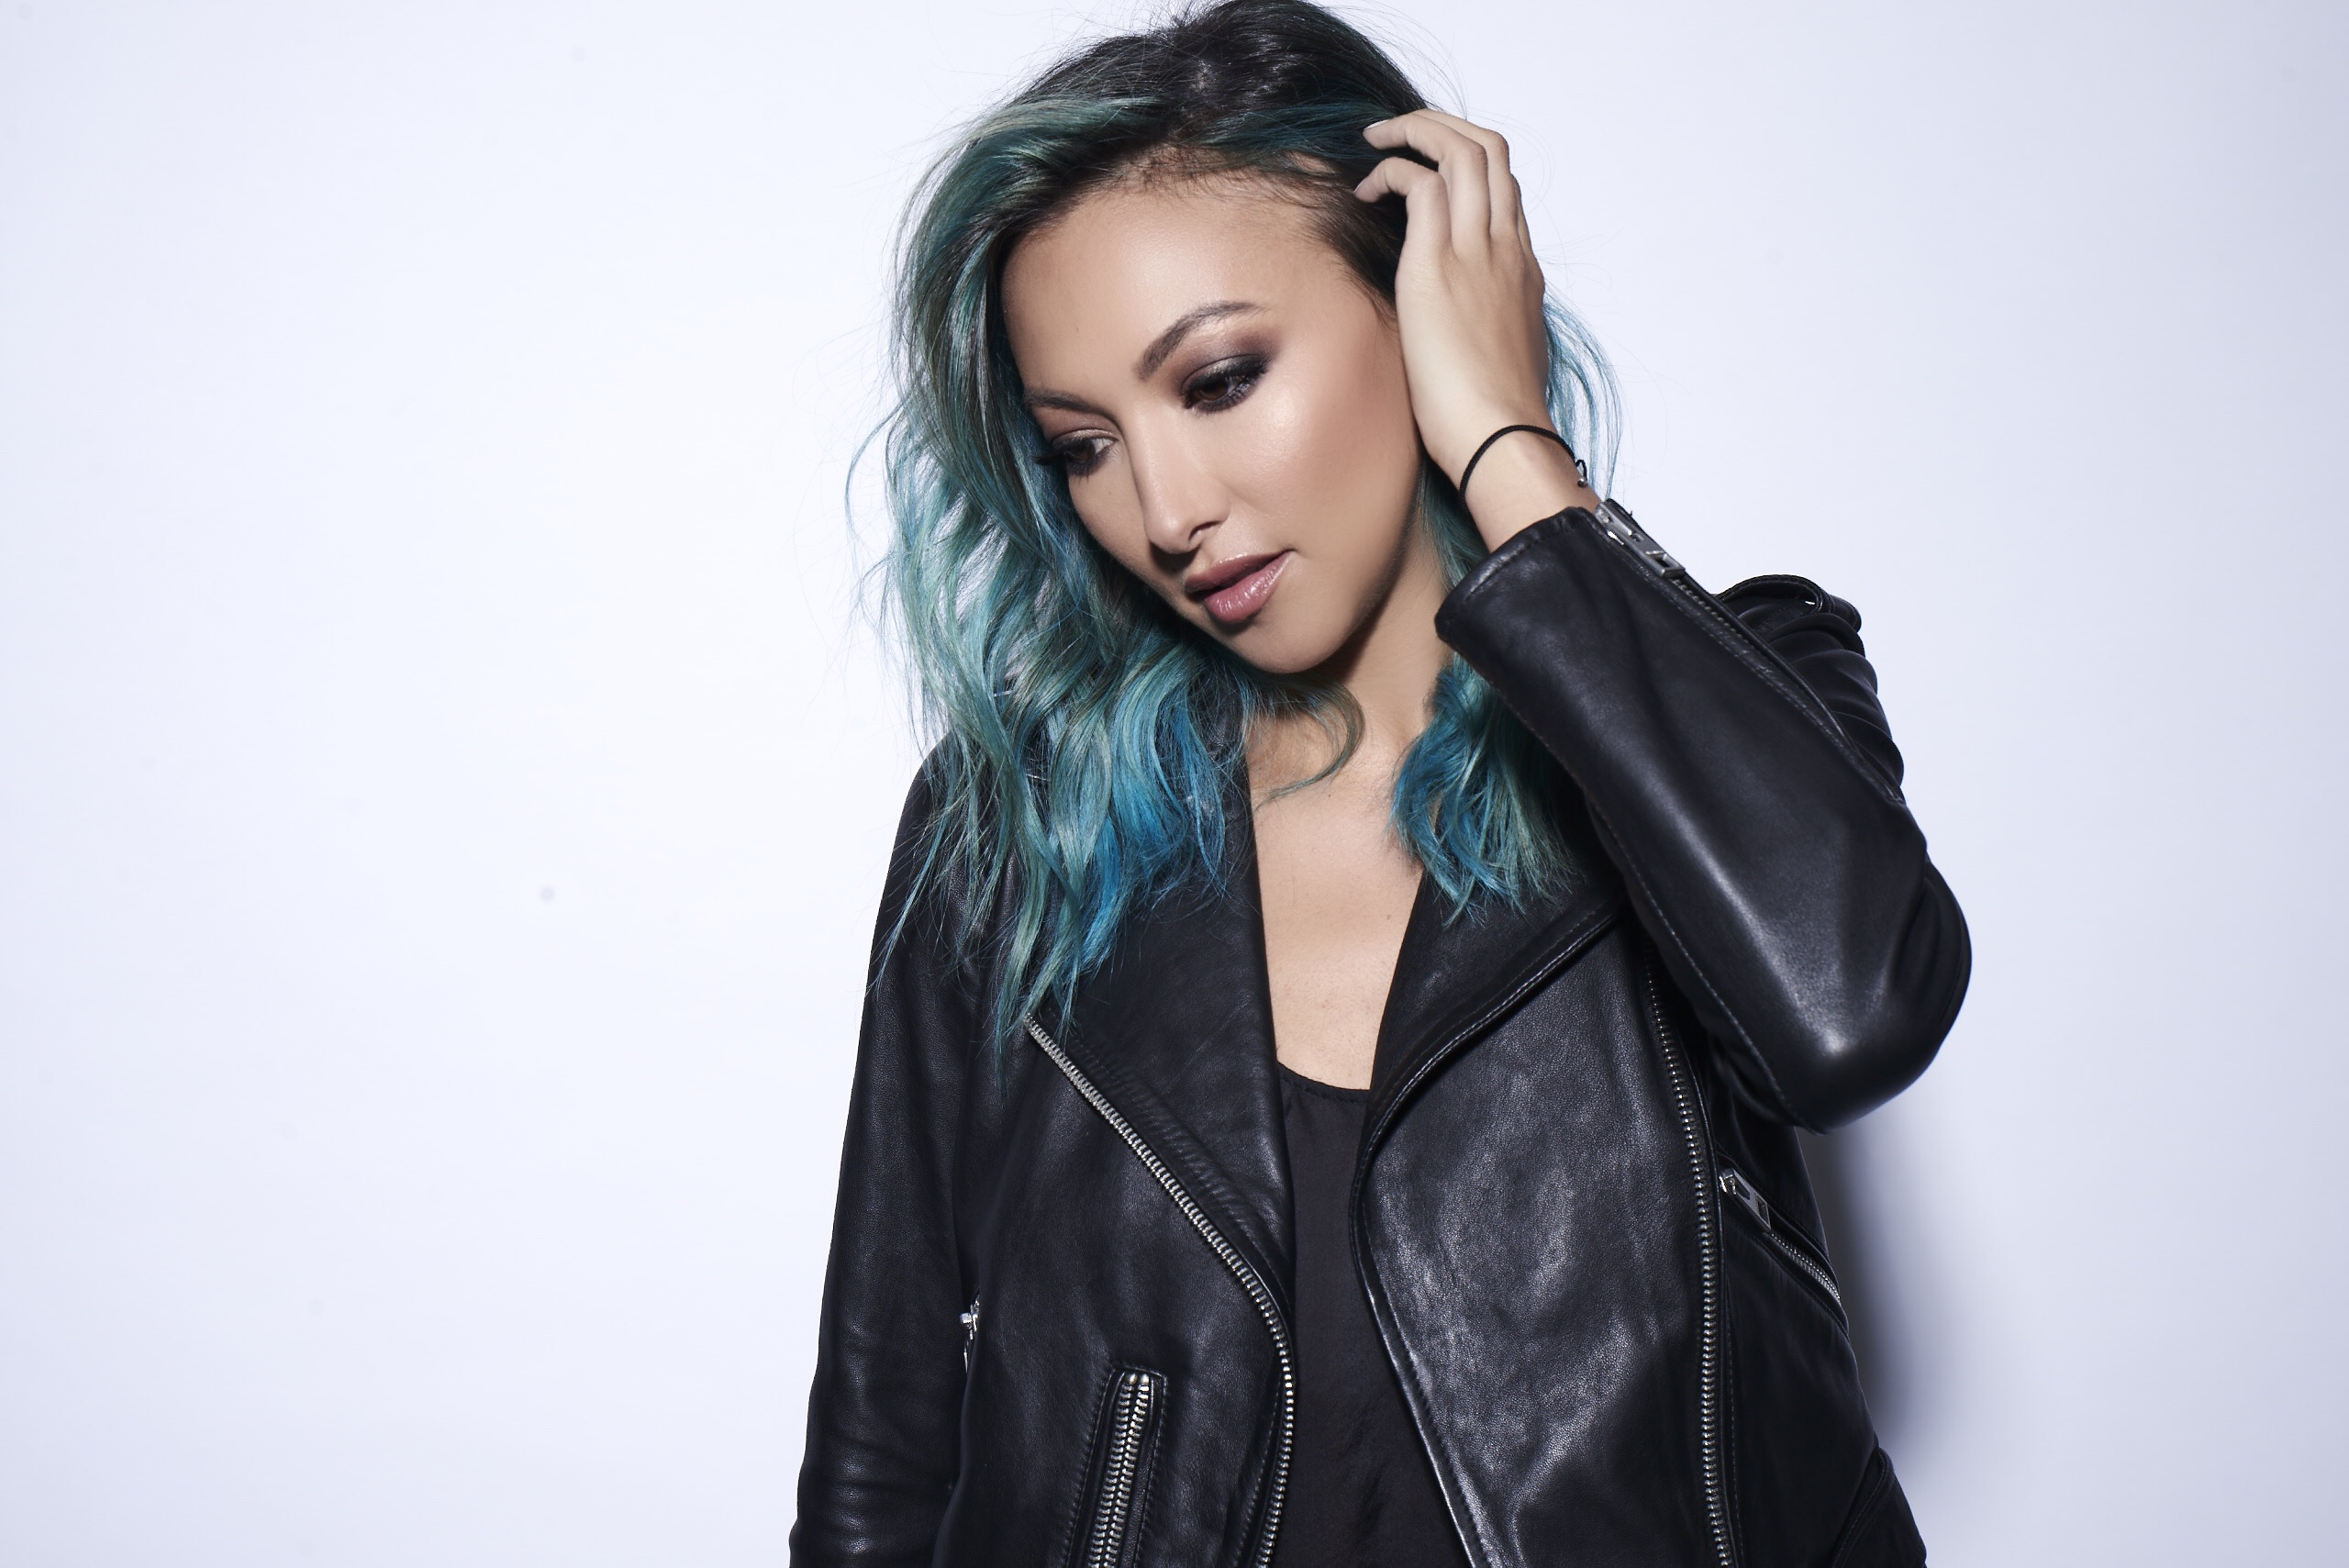 Lauren Lane Stuns With Pete Tong Showcase Mix